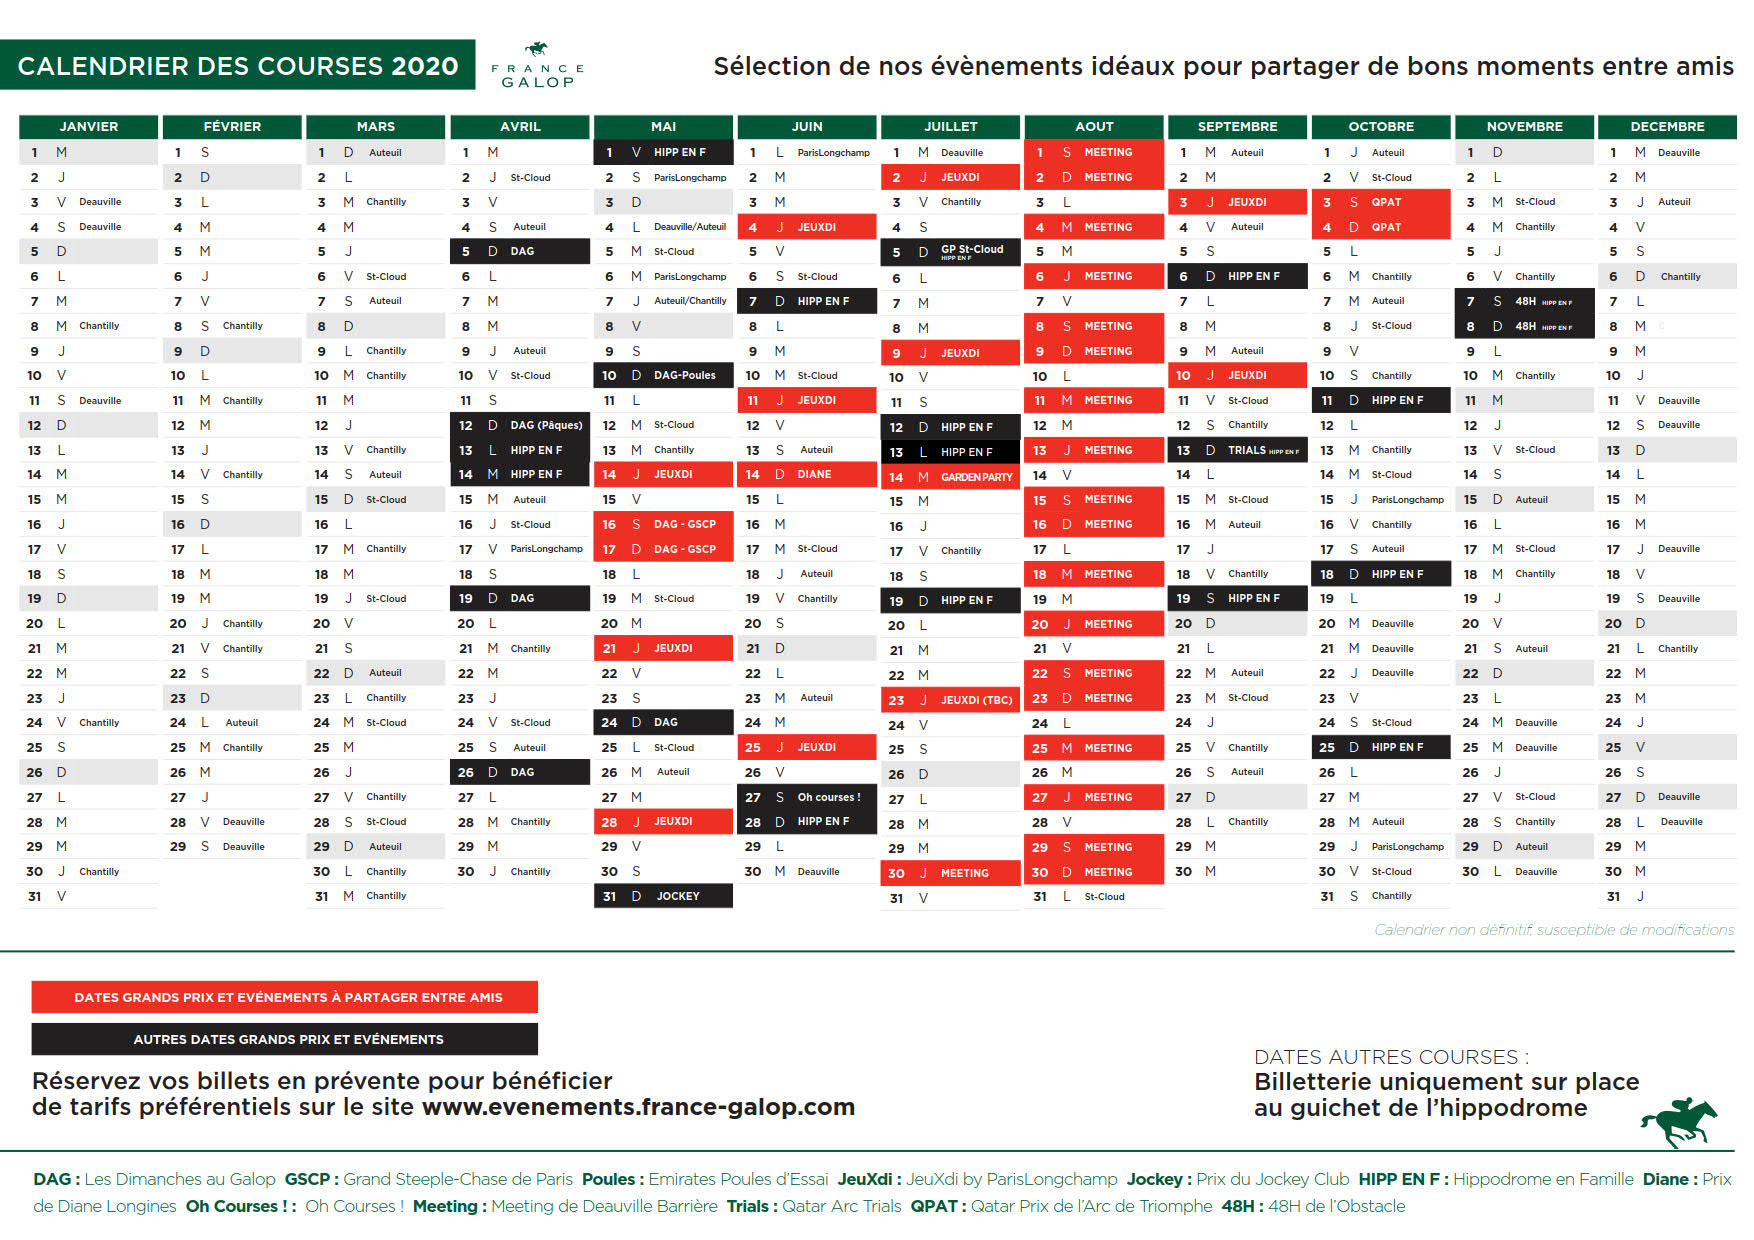 CALENDRIER_EXPERIENCE_AMIS_VDEF_1.jpg